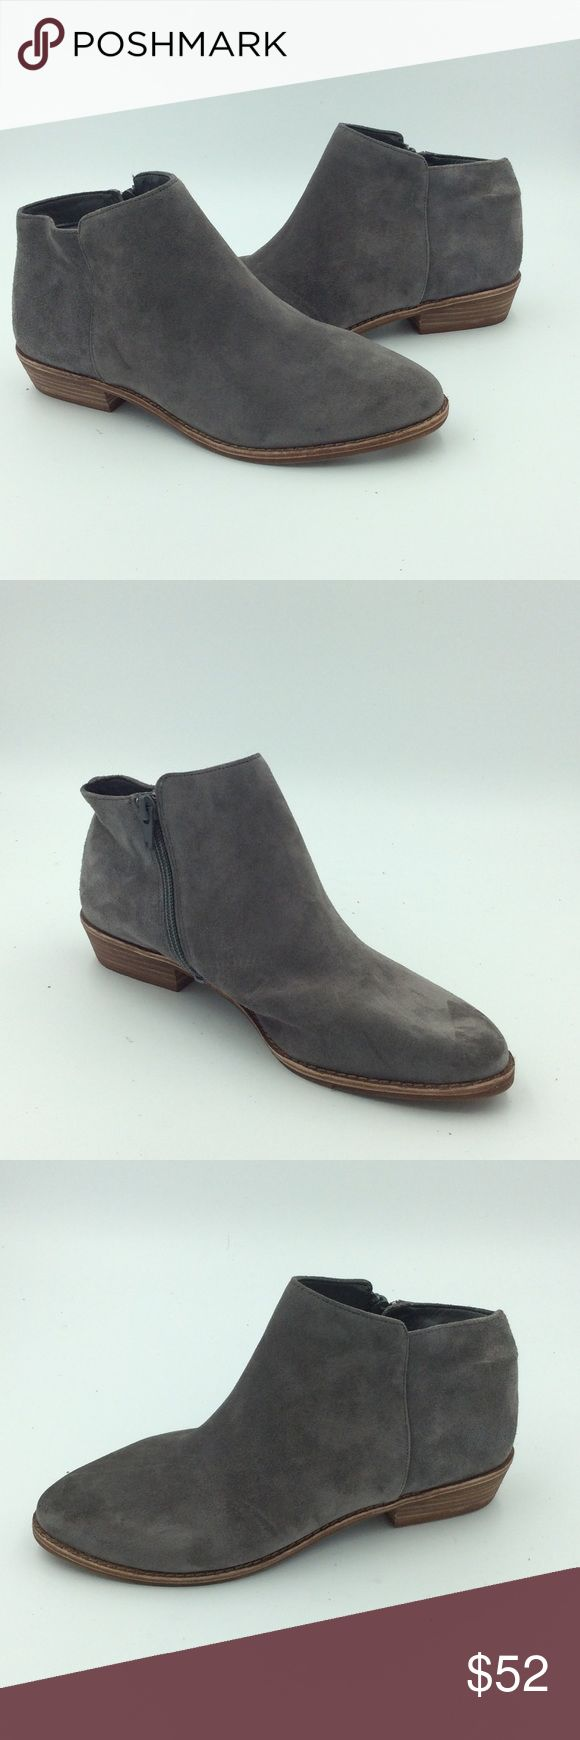 Gray Gianni Bini boot Gray Gianni Bini boot #SKU: A22 Gianni Bini Shoes Ankle Boots & Booties